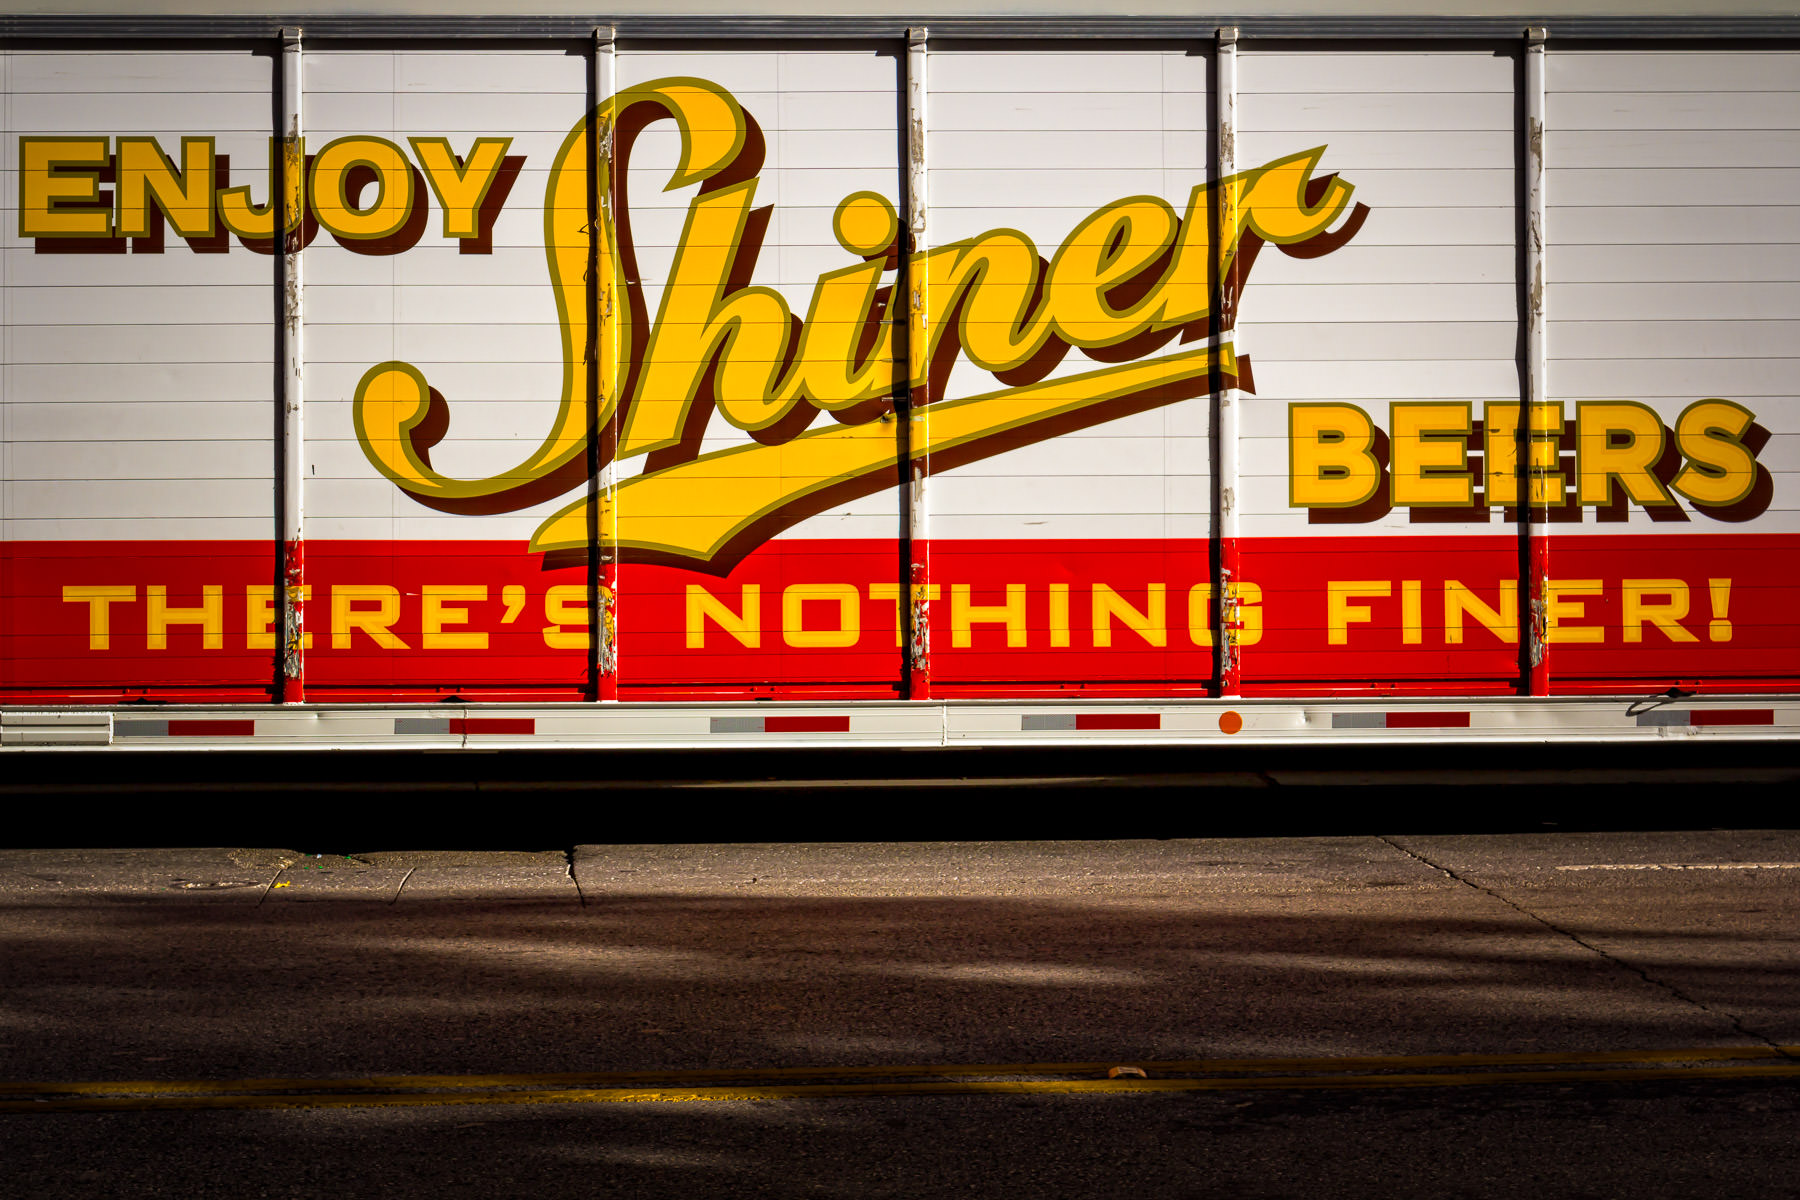 A Shiner Beer truck spotted in Downtown Dallas.